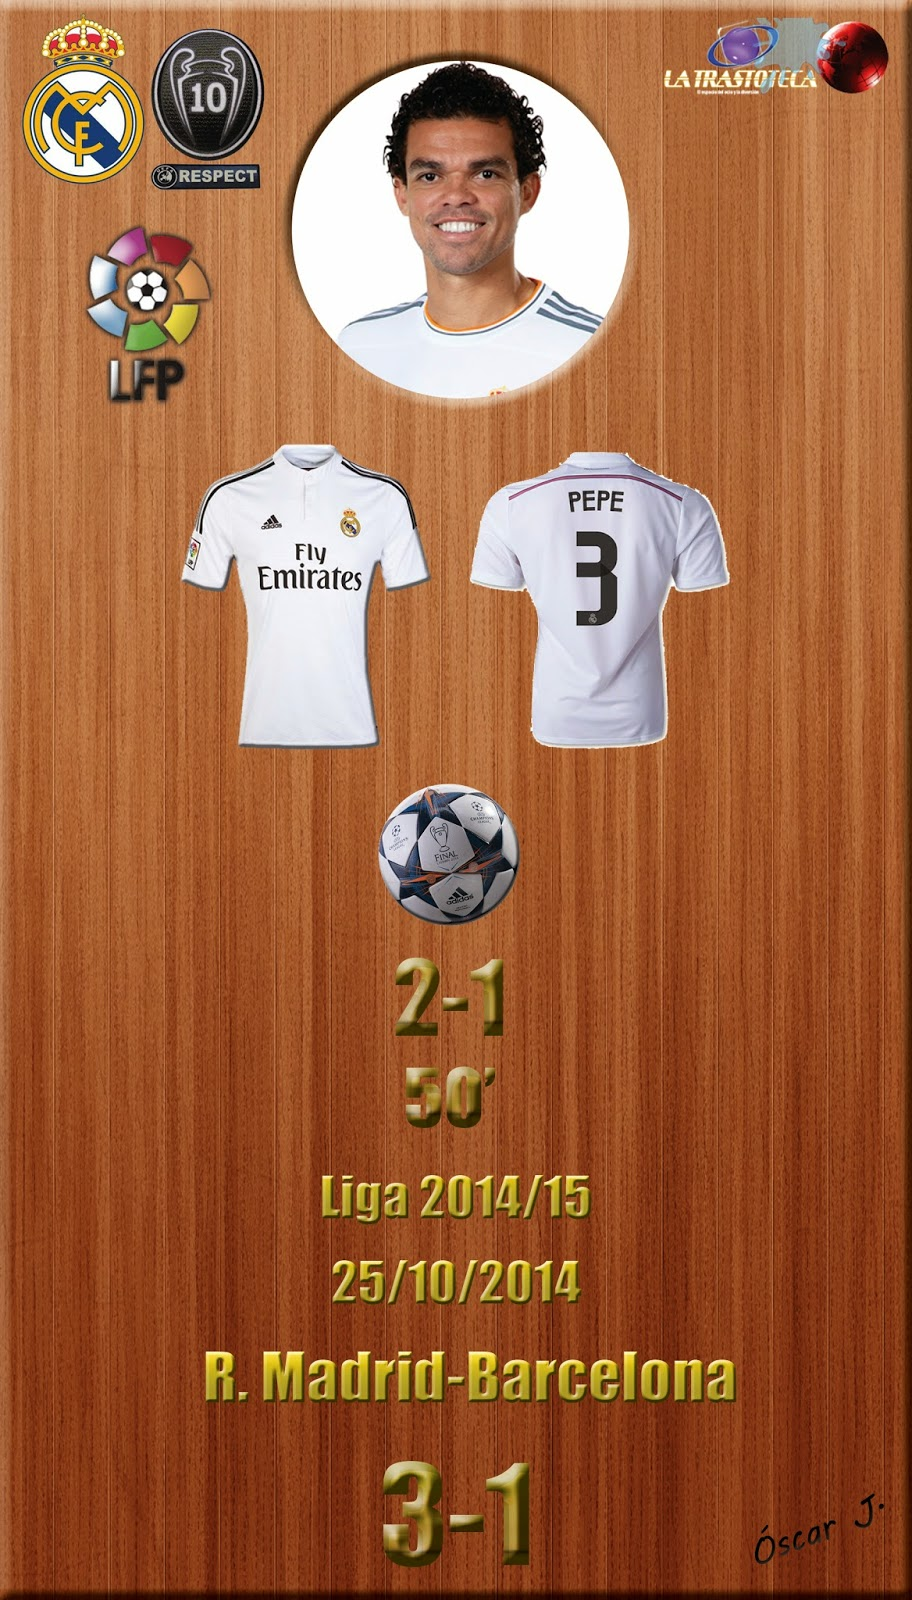 Pepe - (2-1) - Real Madrid 3-1 Barcelona - Liga 2014/15 - (25/10/2014)